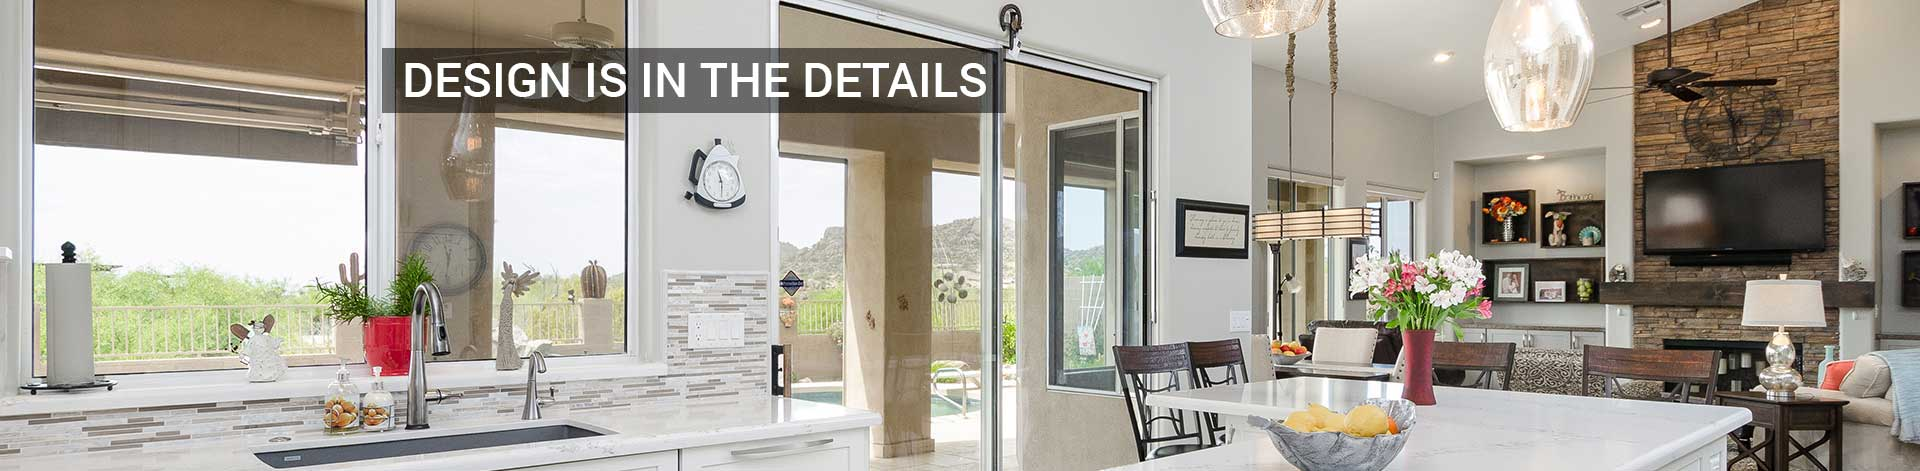 Republic West Remodeling Whole Home Remodeling Phoenix Az Interesting Details Page